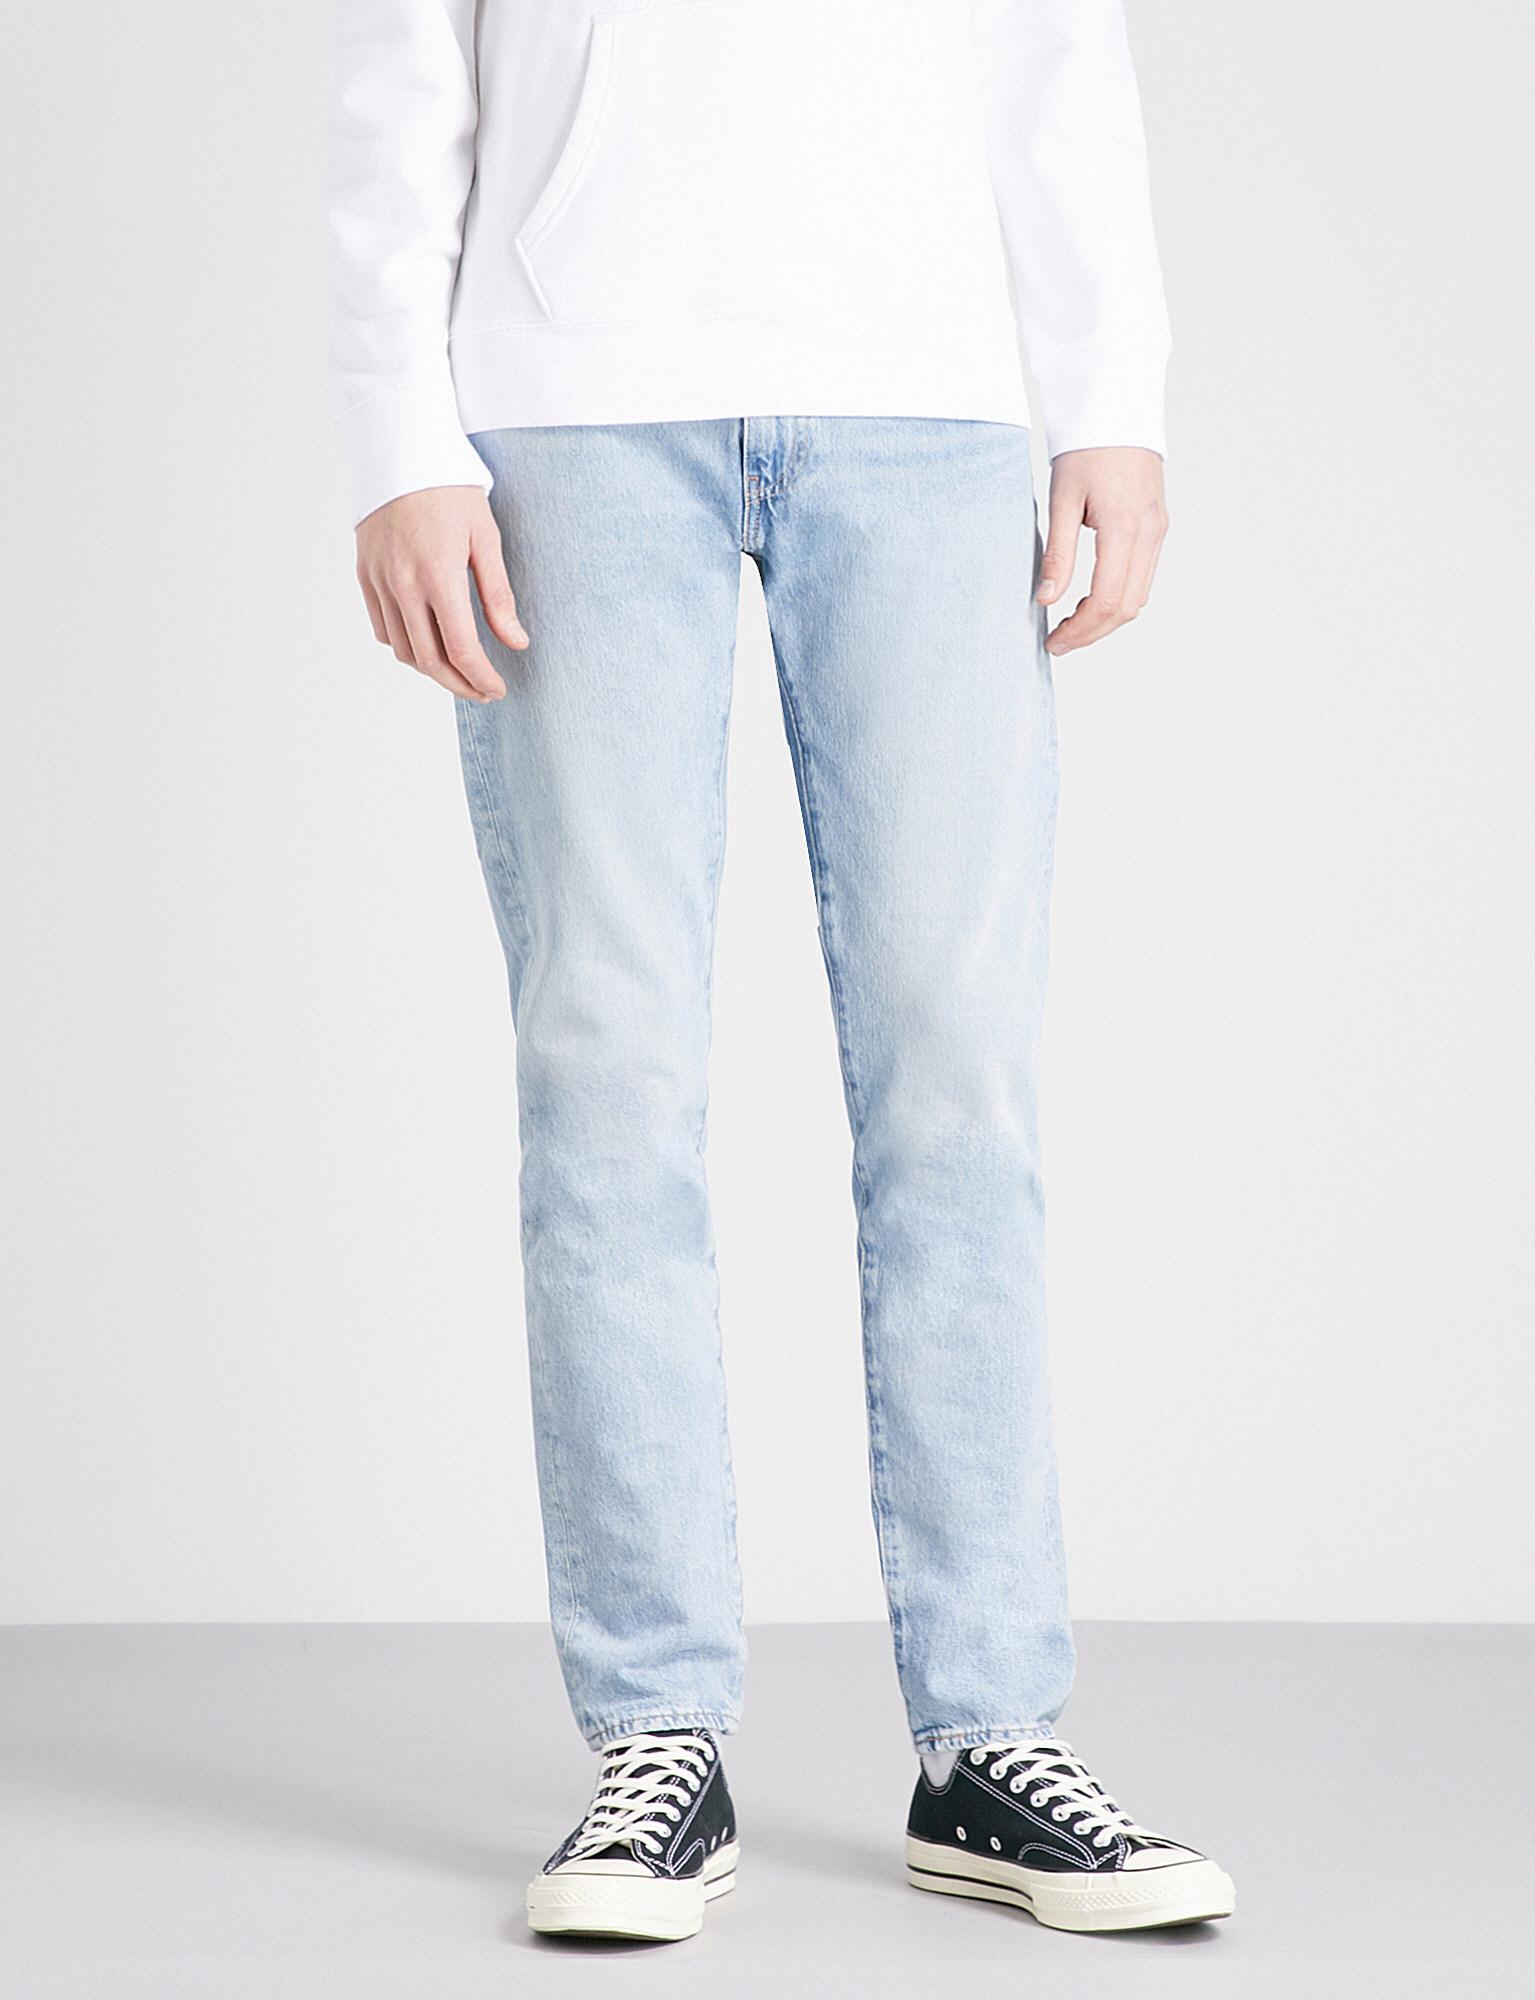 In 512 Fit Tapered Levi's Jeans Lyst Slim Men Blue For wAaXFqRF